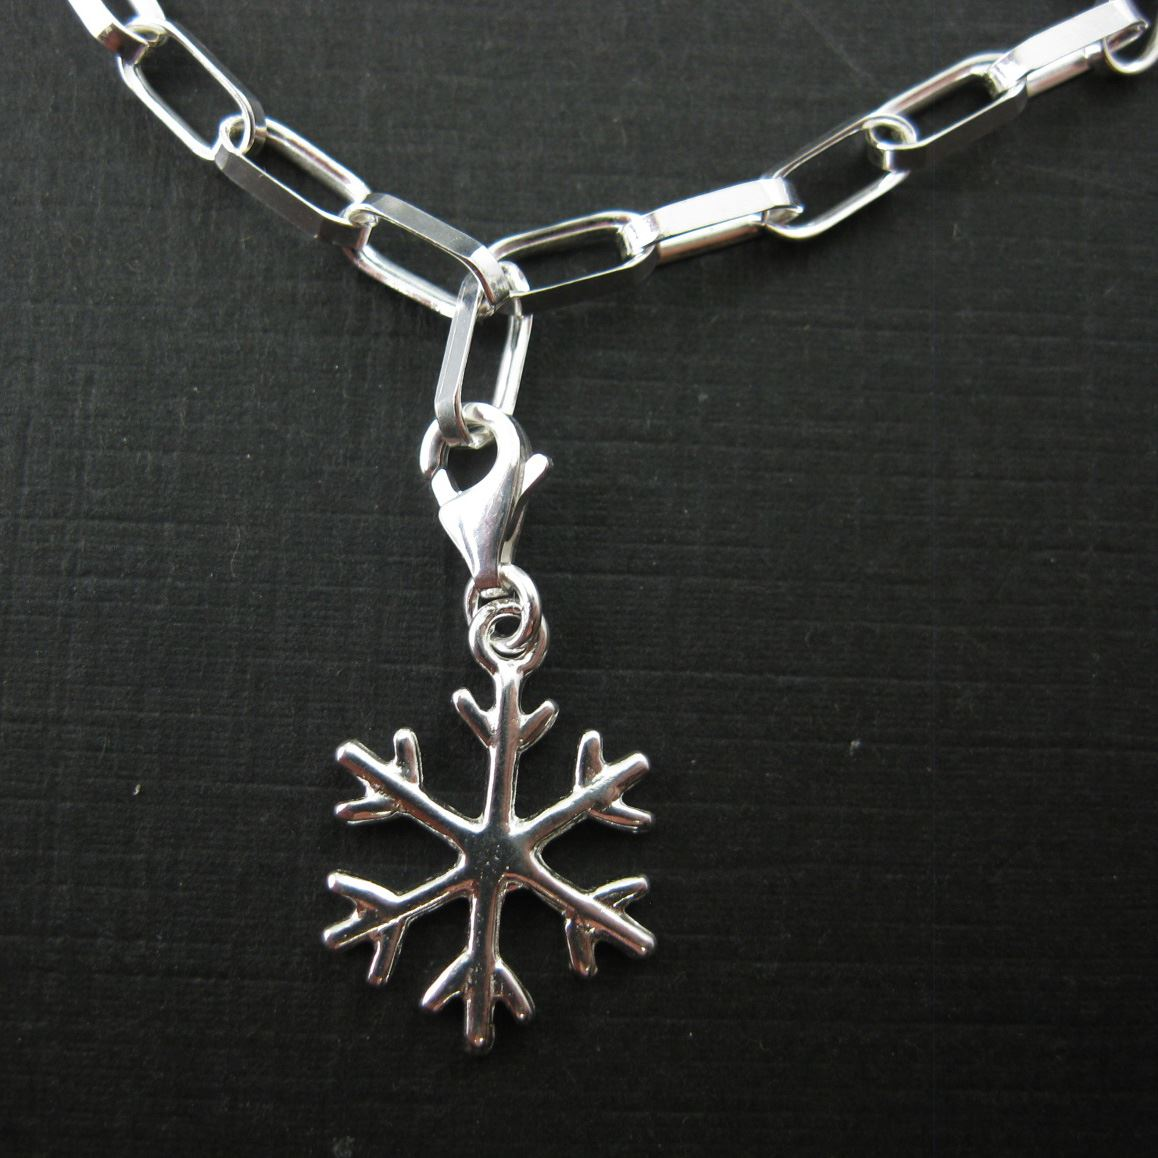 Sterling Silver Snowflake Charm - Charm with Clasp - Charm Bracelet Charm- Add on Charm